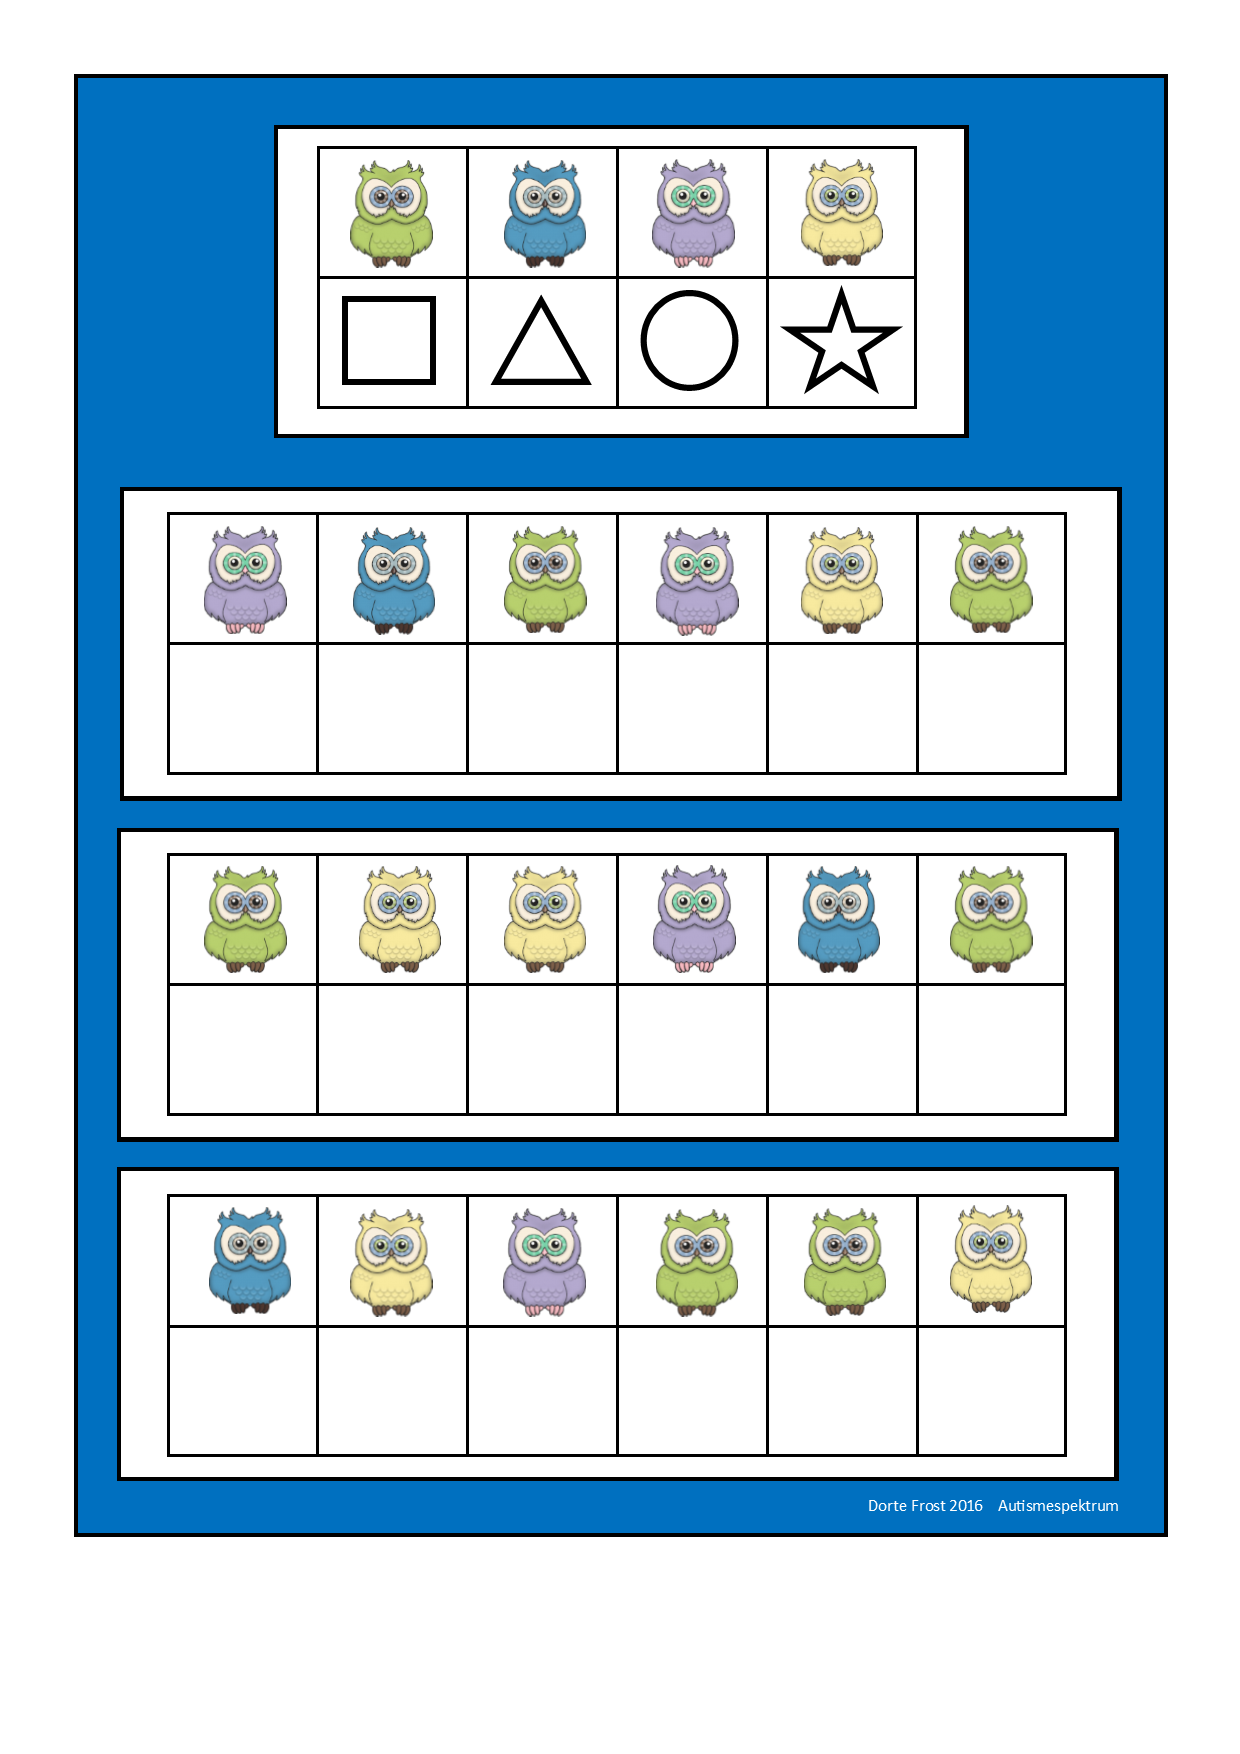 Board For The Owl Visual Perception Game Find The